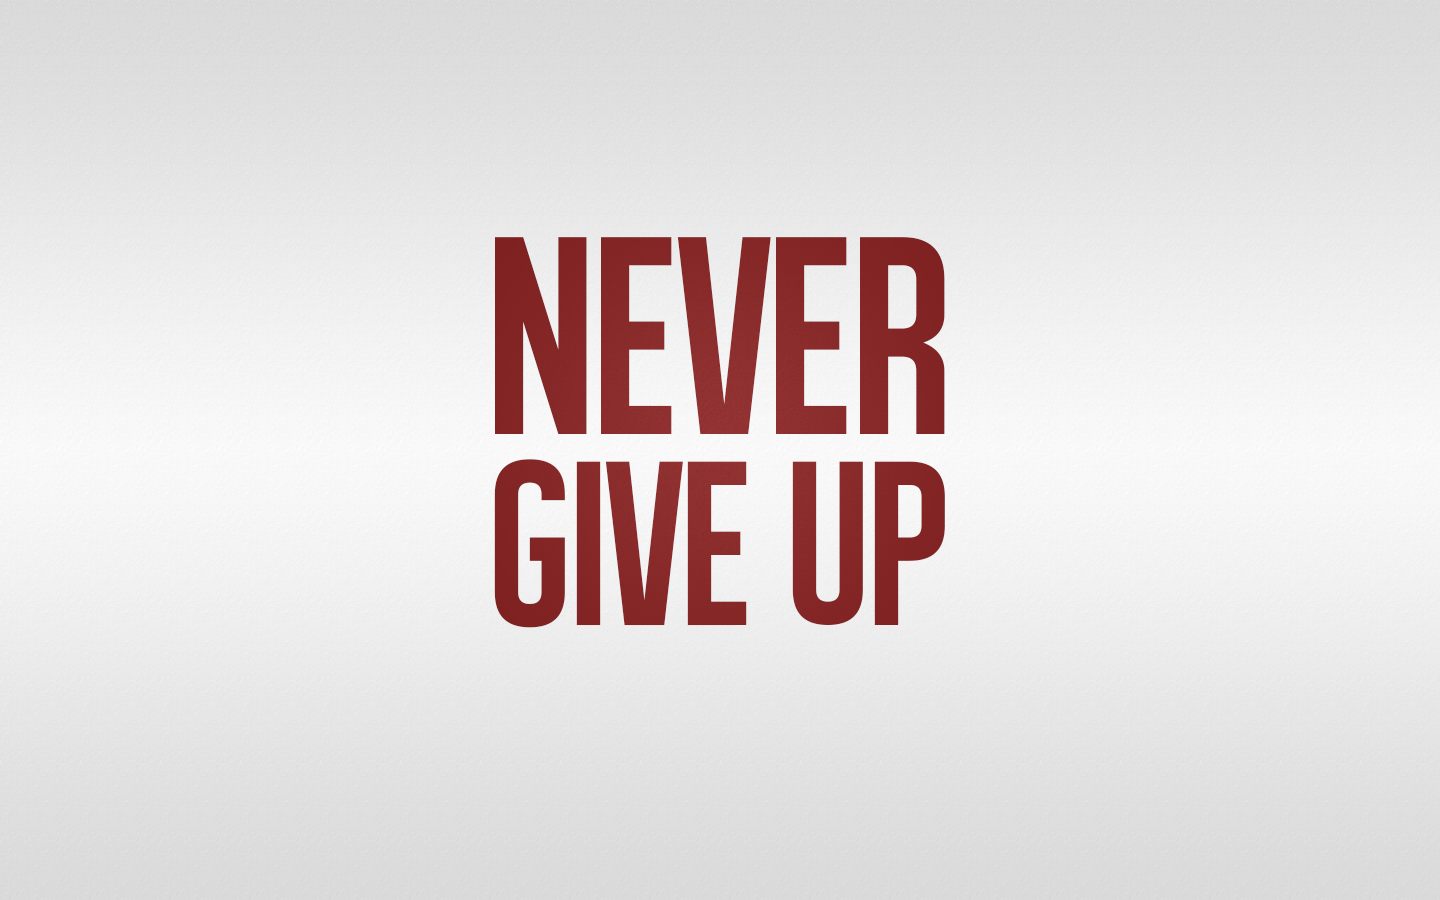 Cute Wallpapers Keep Calm Never Give Up Www Imgkid Com The Image Kid Has It